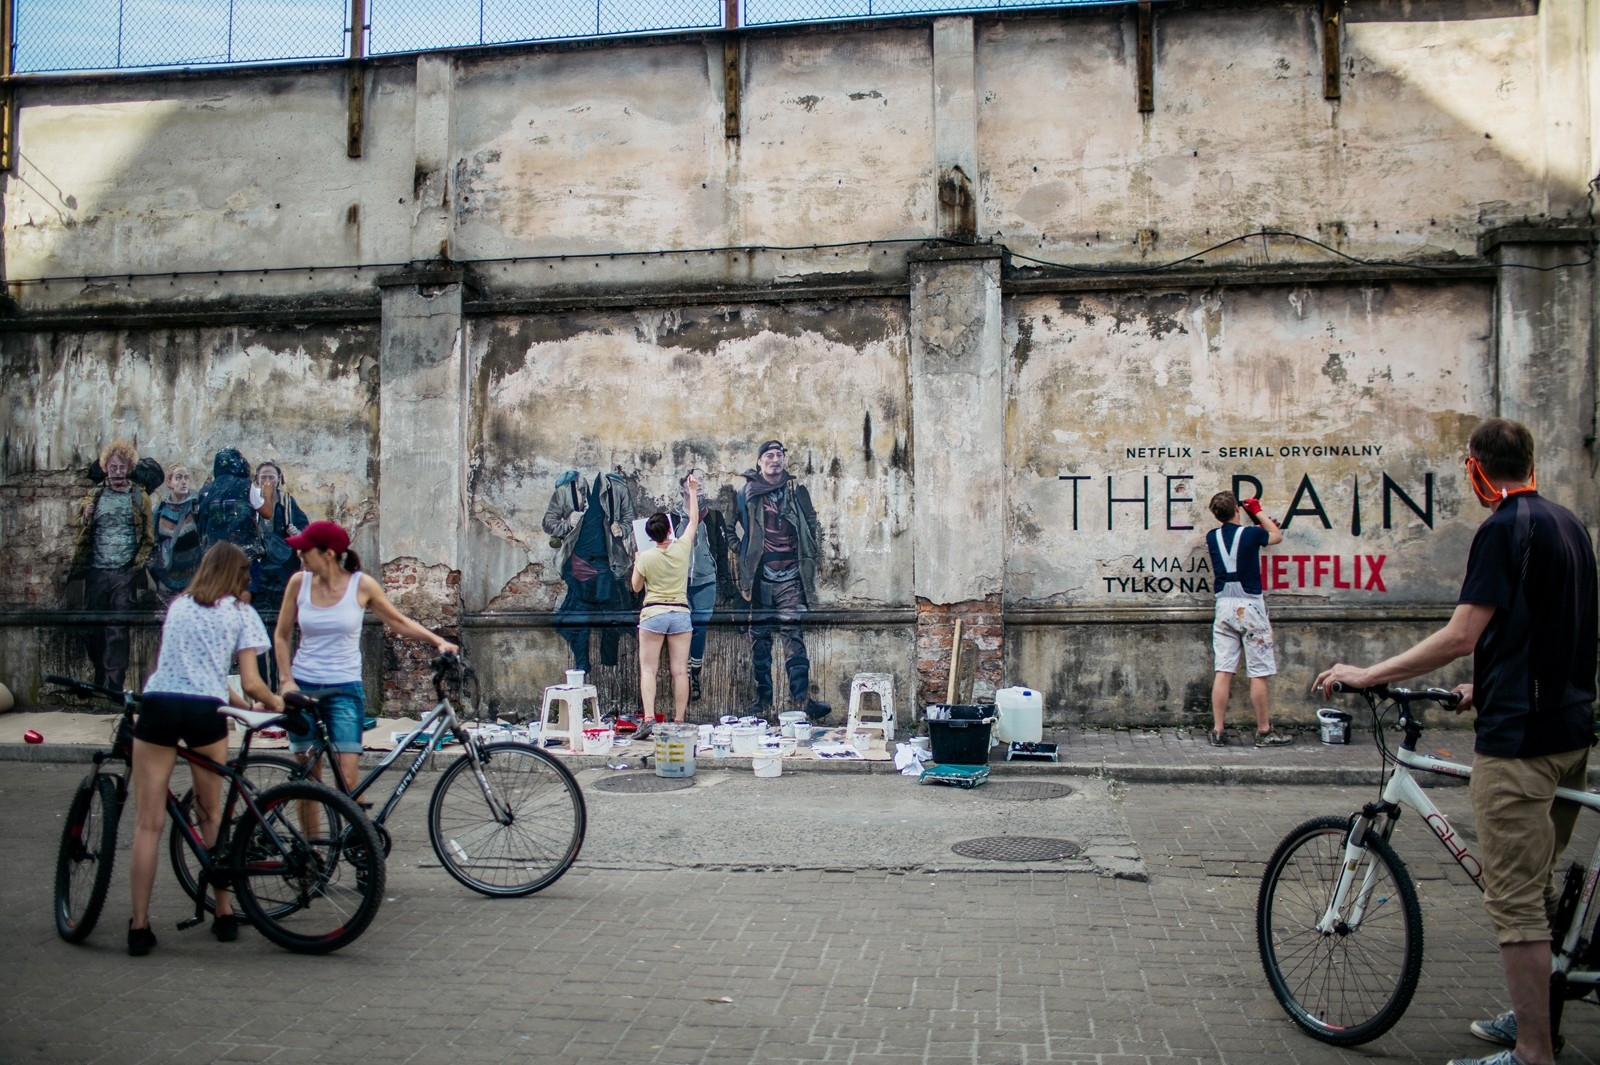 Tytano: Kraków's Urban Lifestyle Complex ad in the form of a wall mural | The Rain  | Portfolio